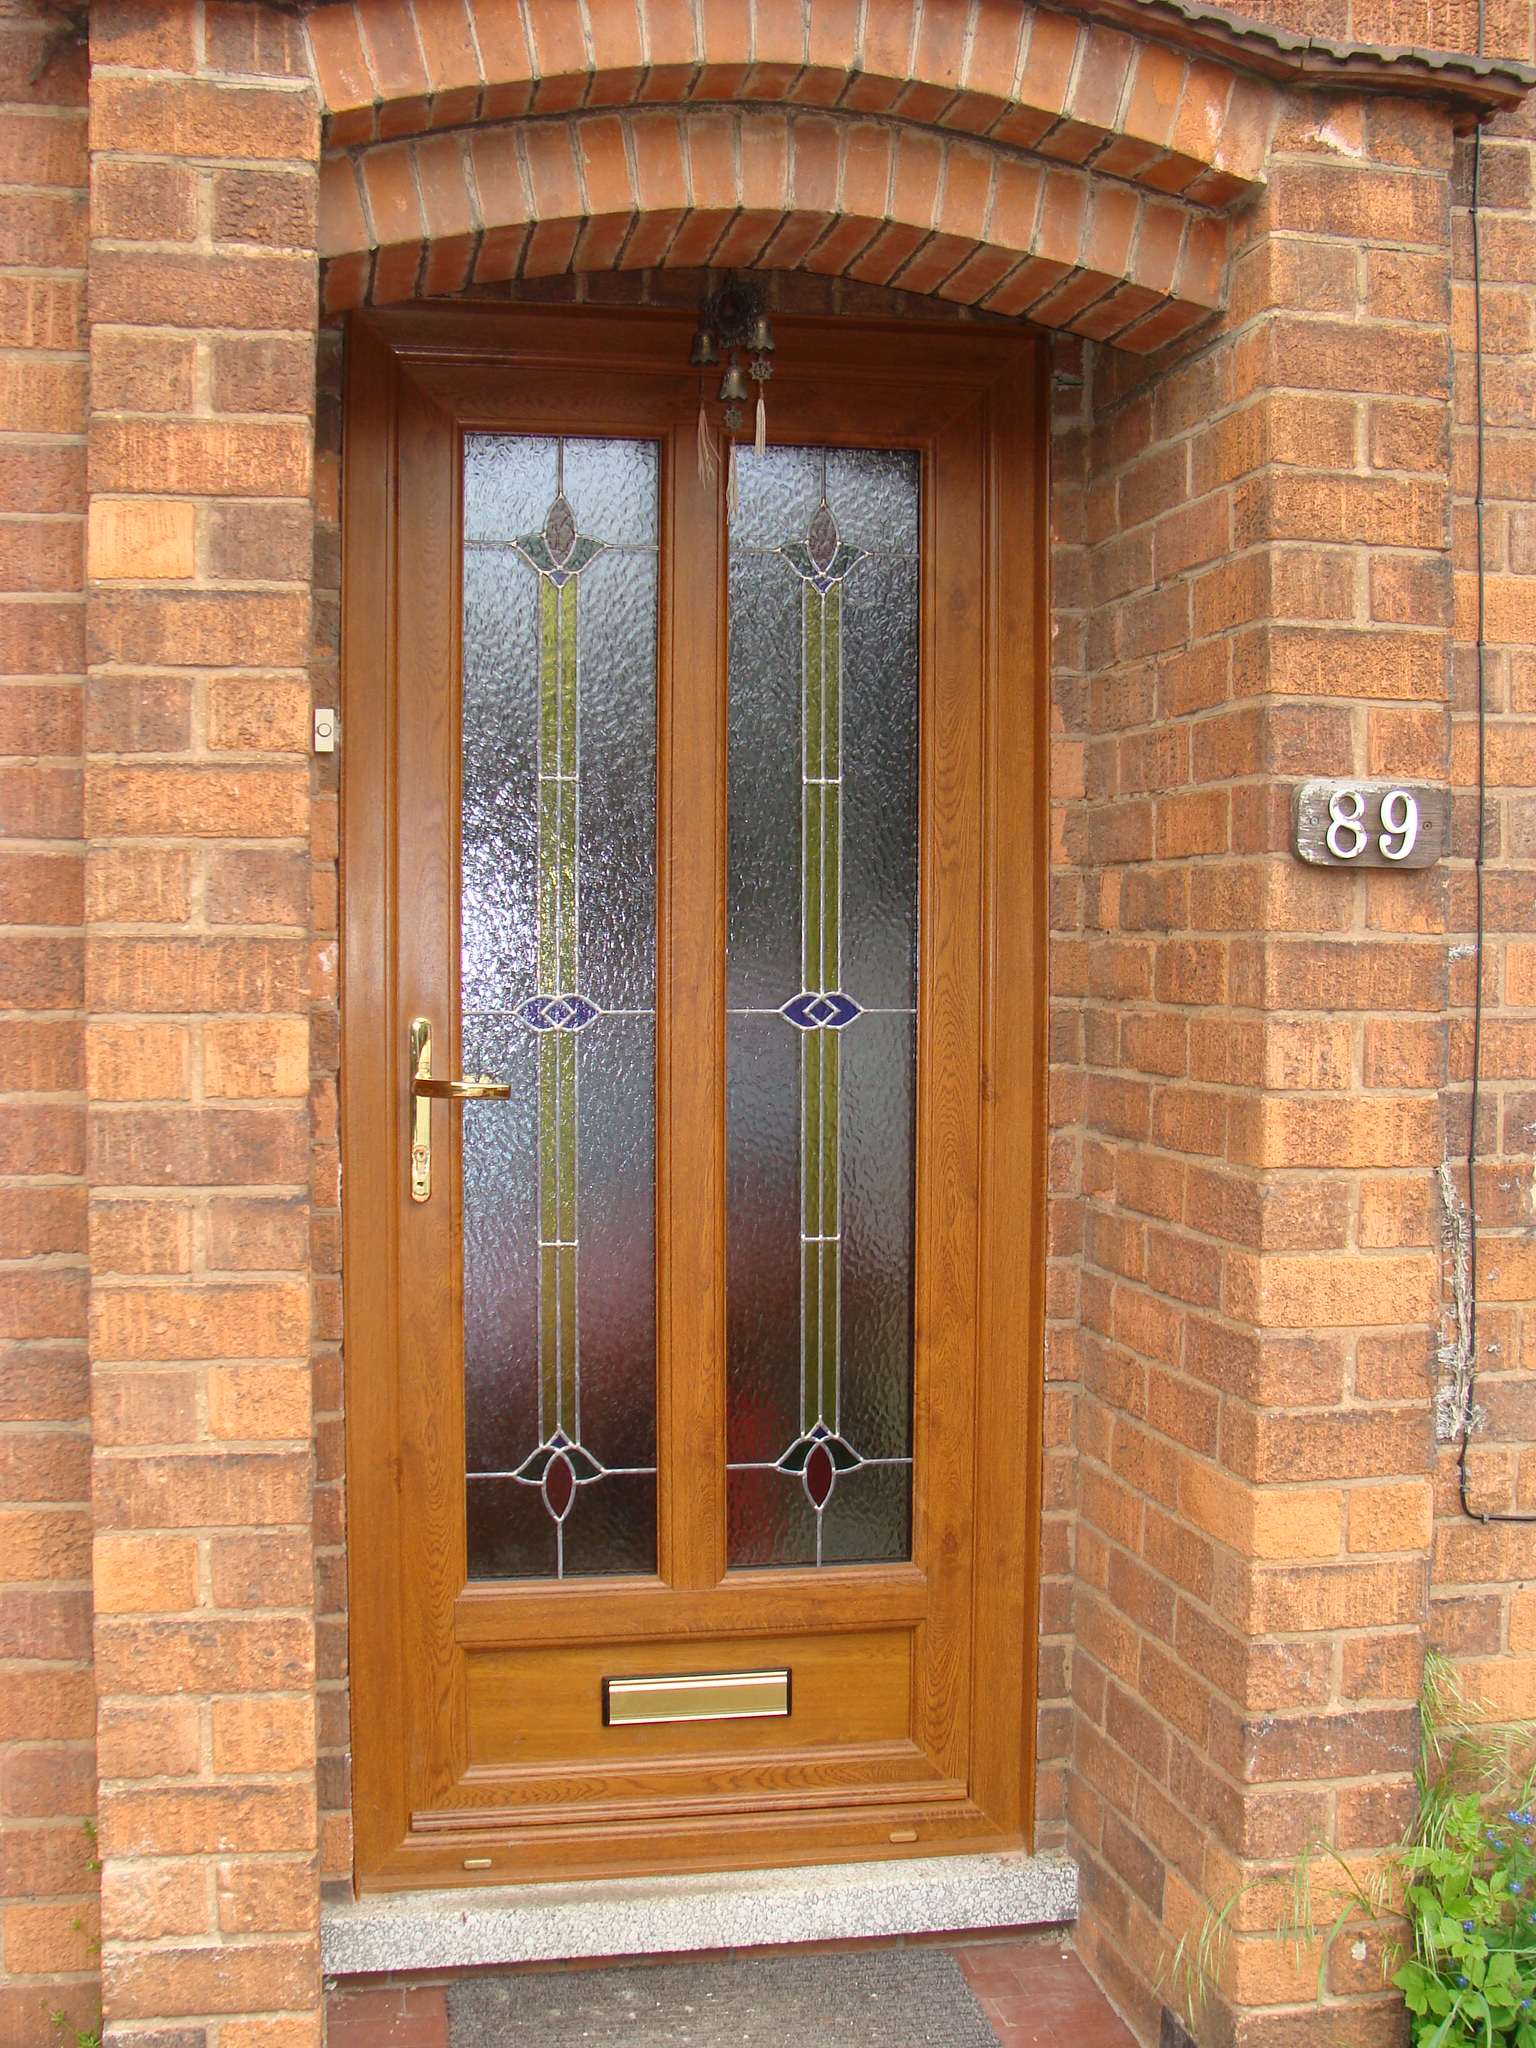 Oak Doors With Windows : Upvc golden oak coloured lead dm windows